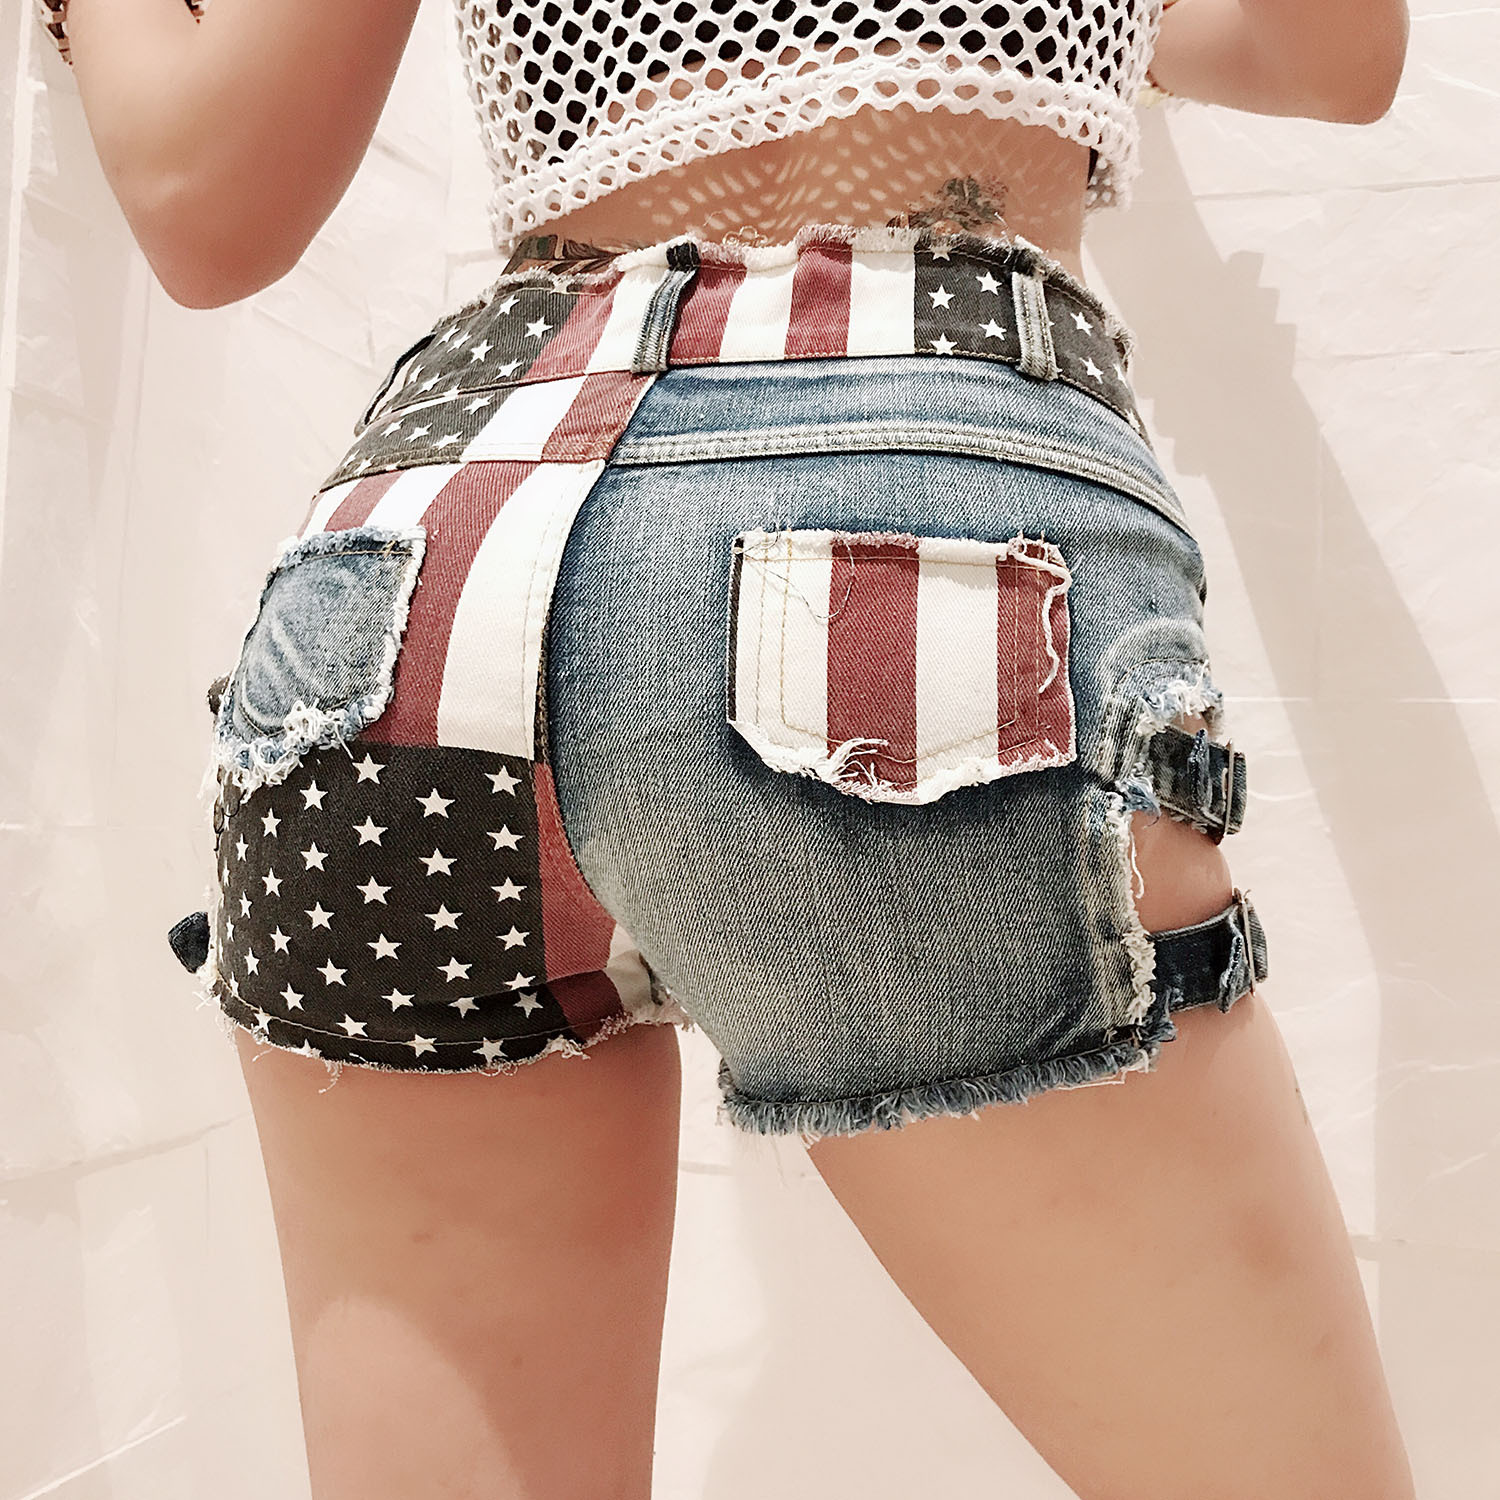 Danjeaner Bf Style Summer Ripped Jean Shorts For Women Sexy Low High Hollow Out Flag Printed Skinny Hot Pants Pants Clubwear